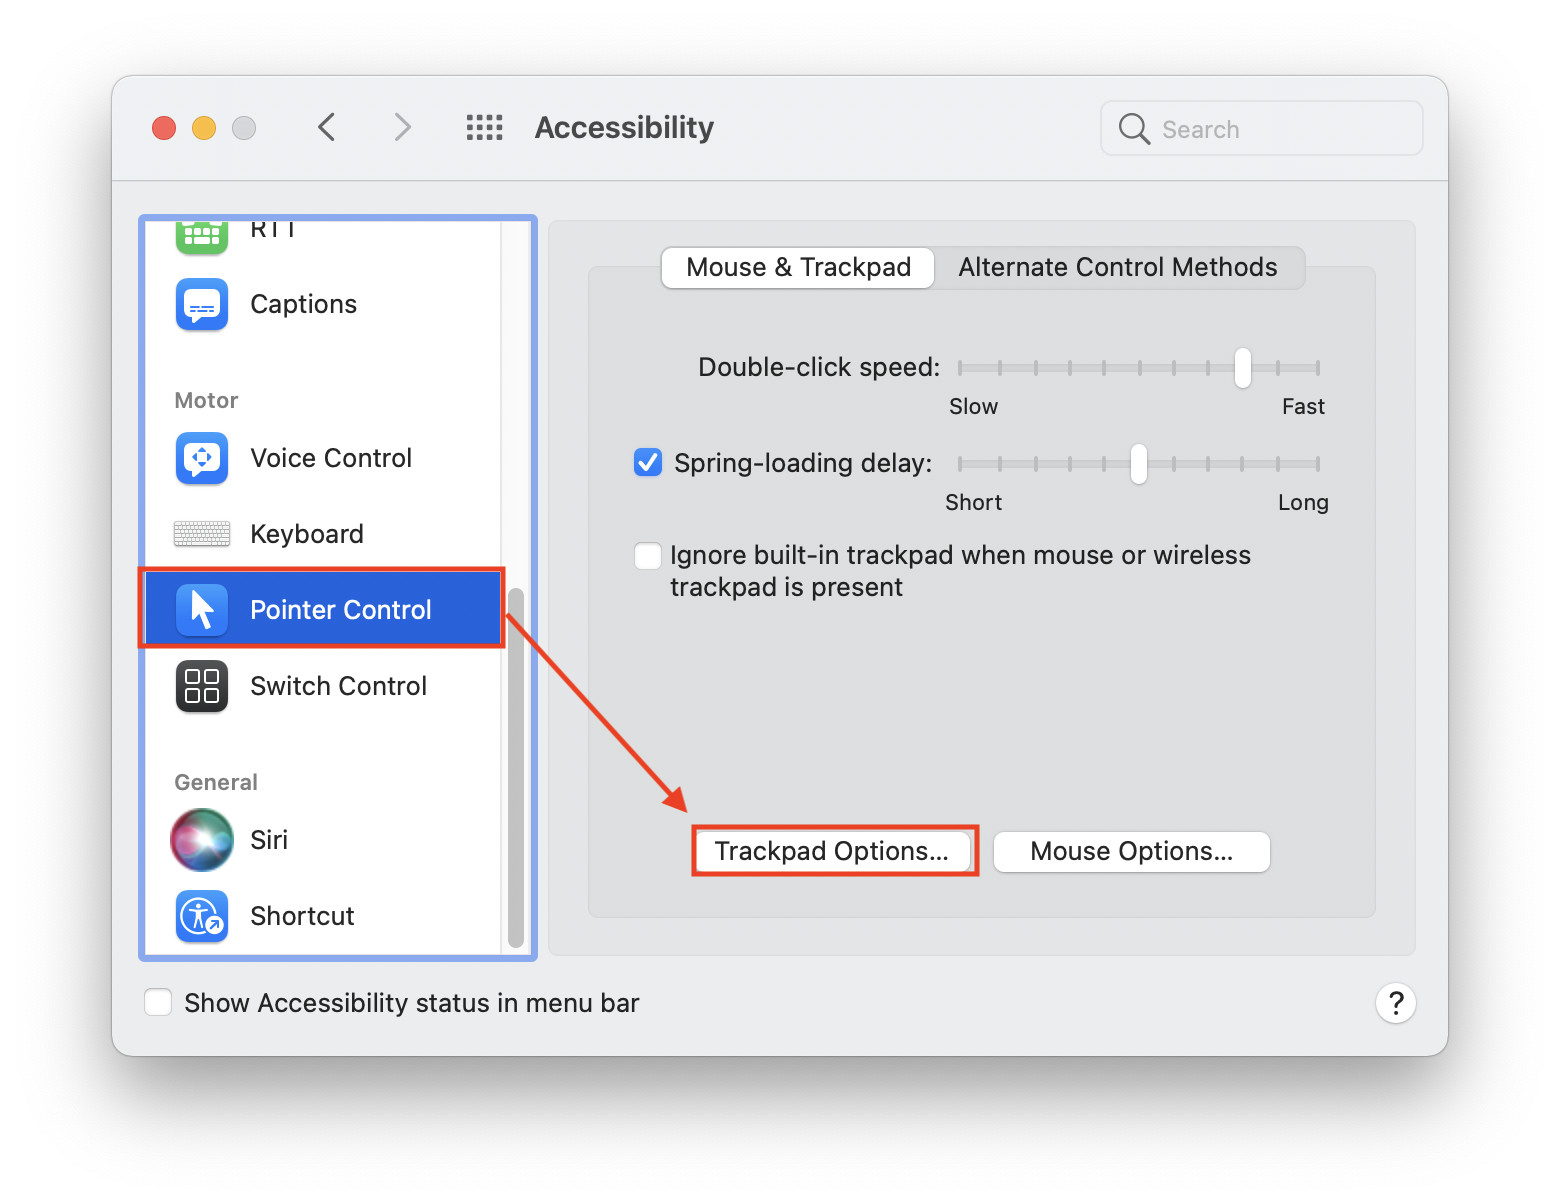 Pointer Control Accessibility Preferences